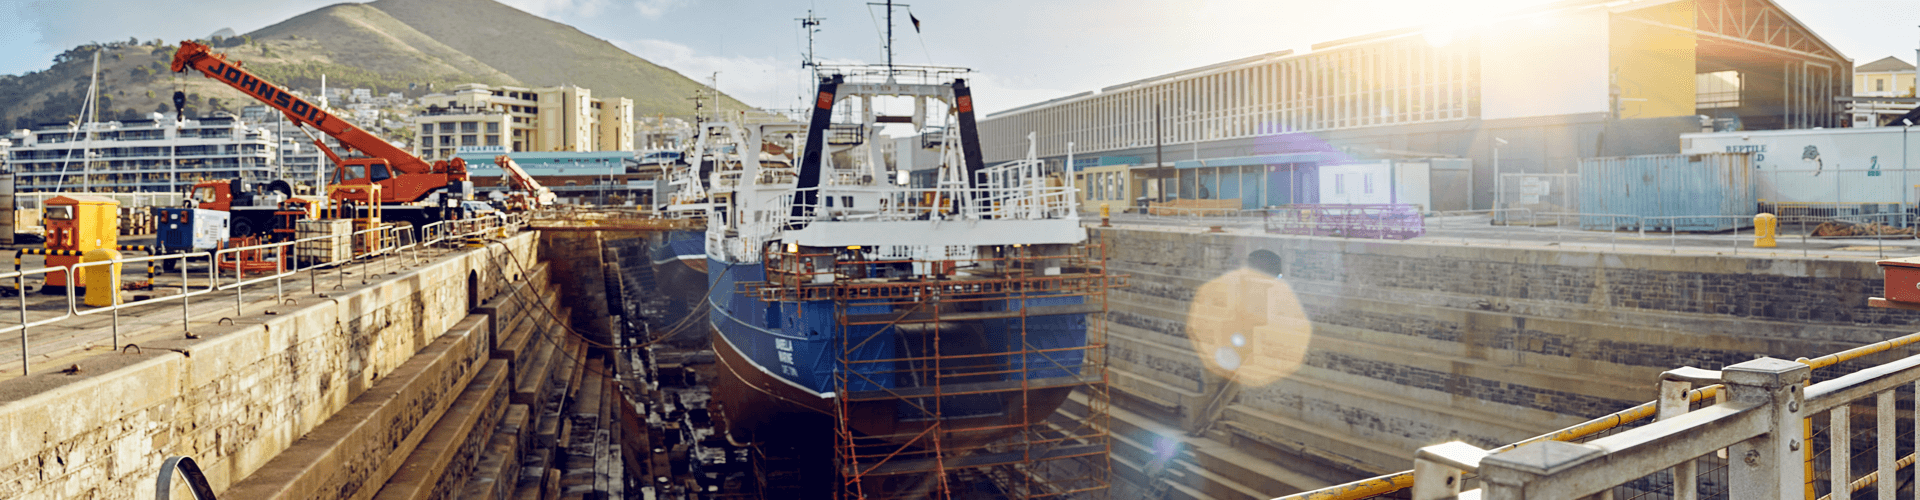 V&A Waterfront dry dock